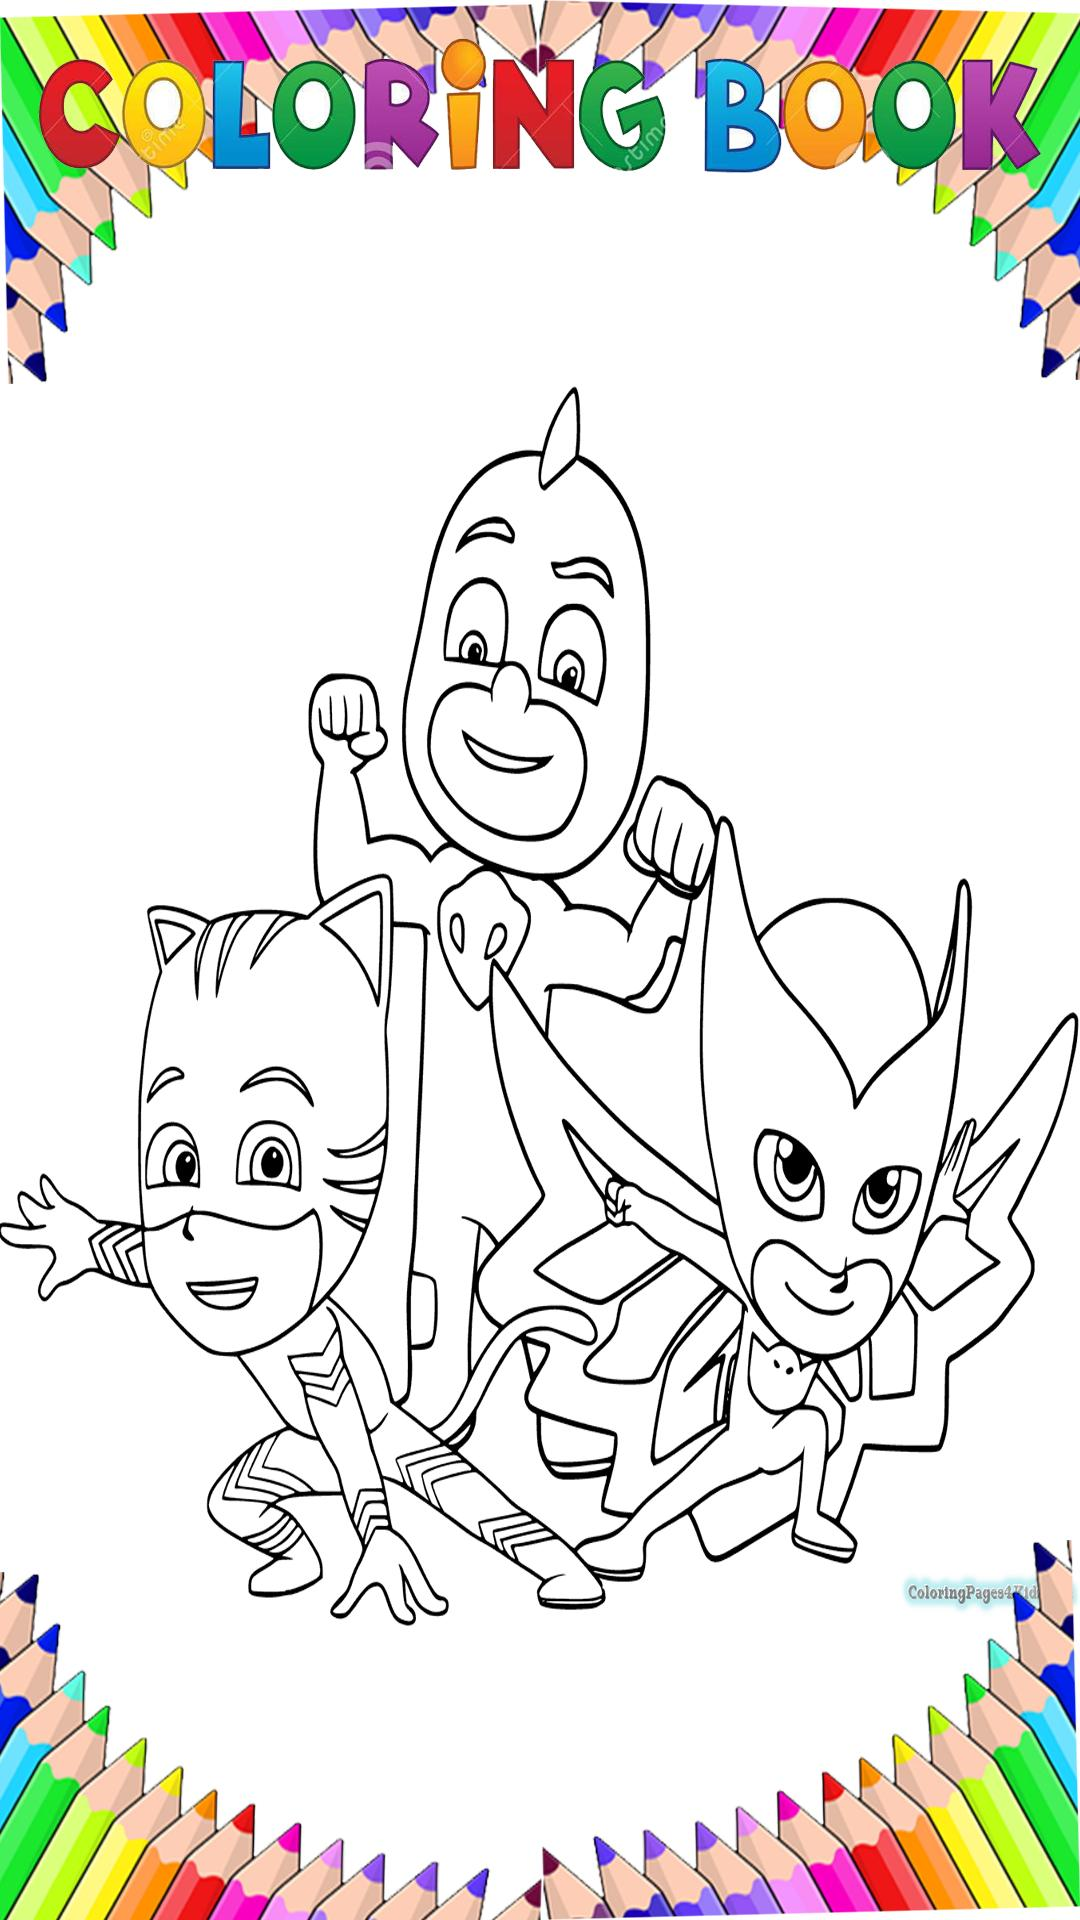 pj mask coloring book for adult by fans